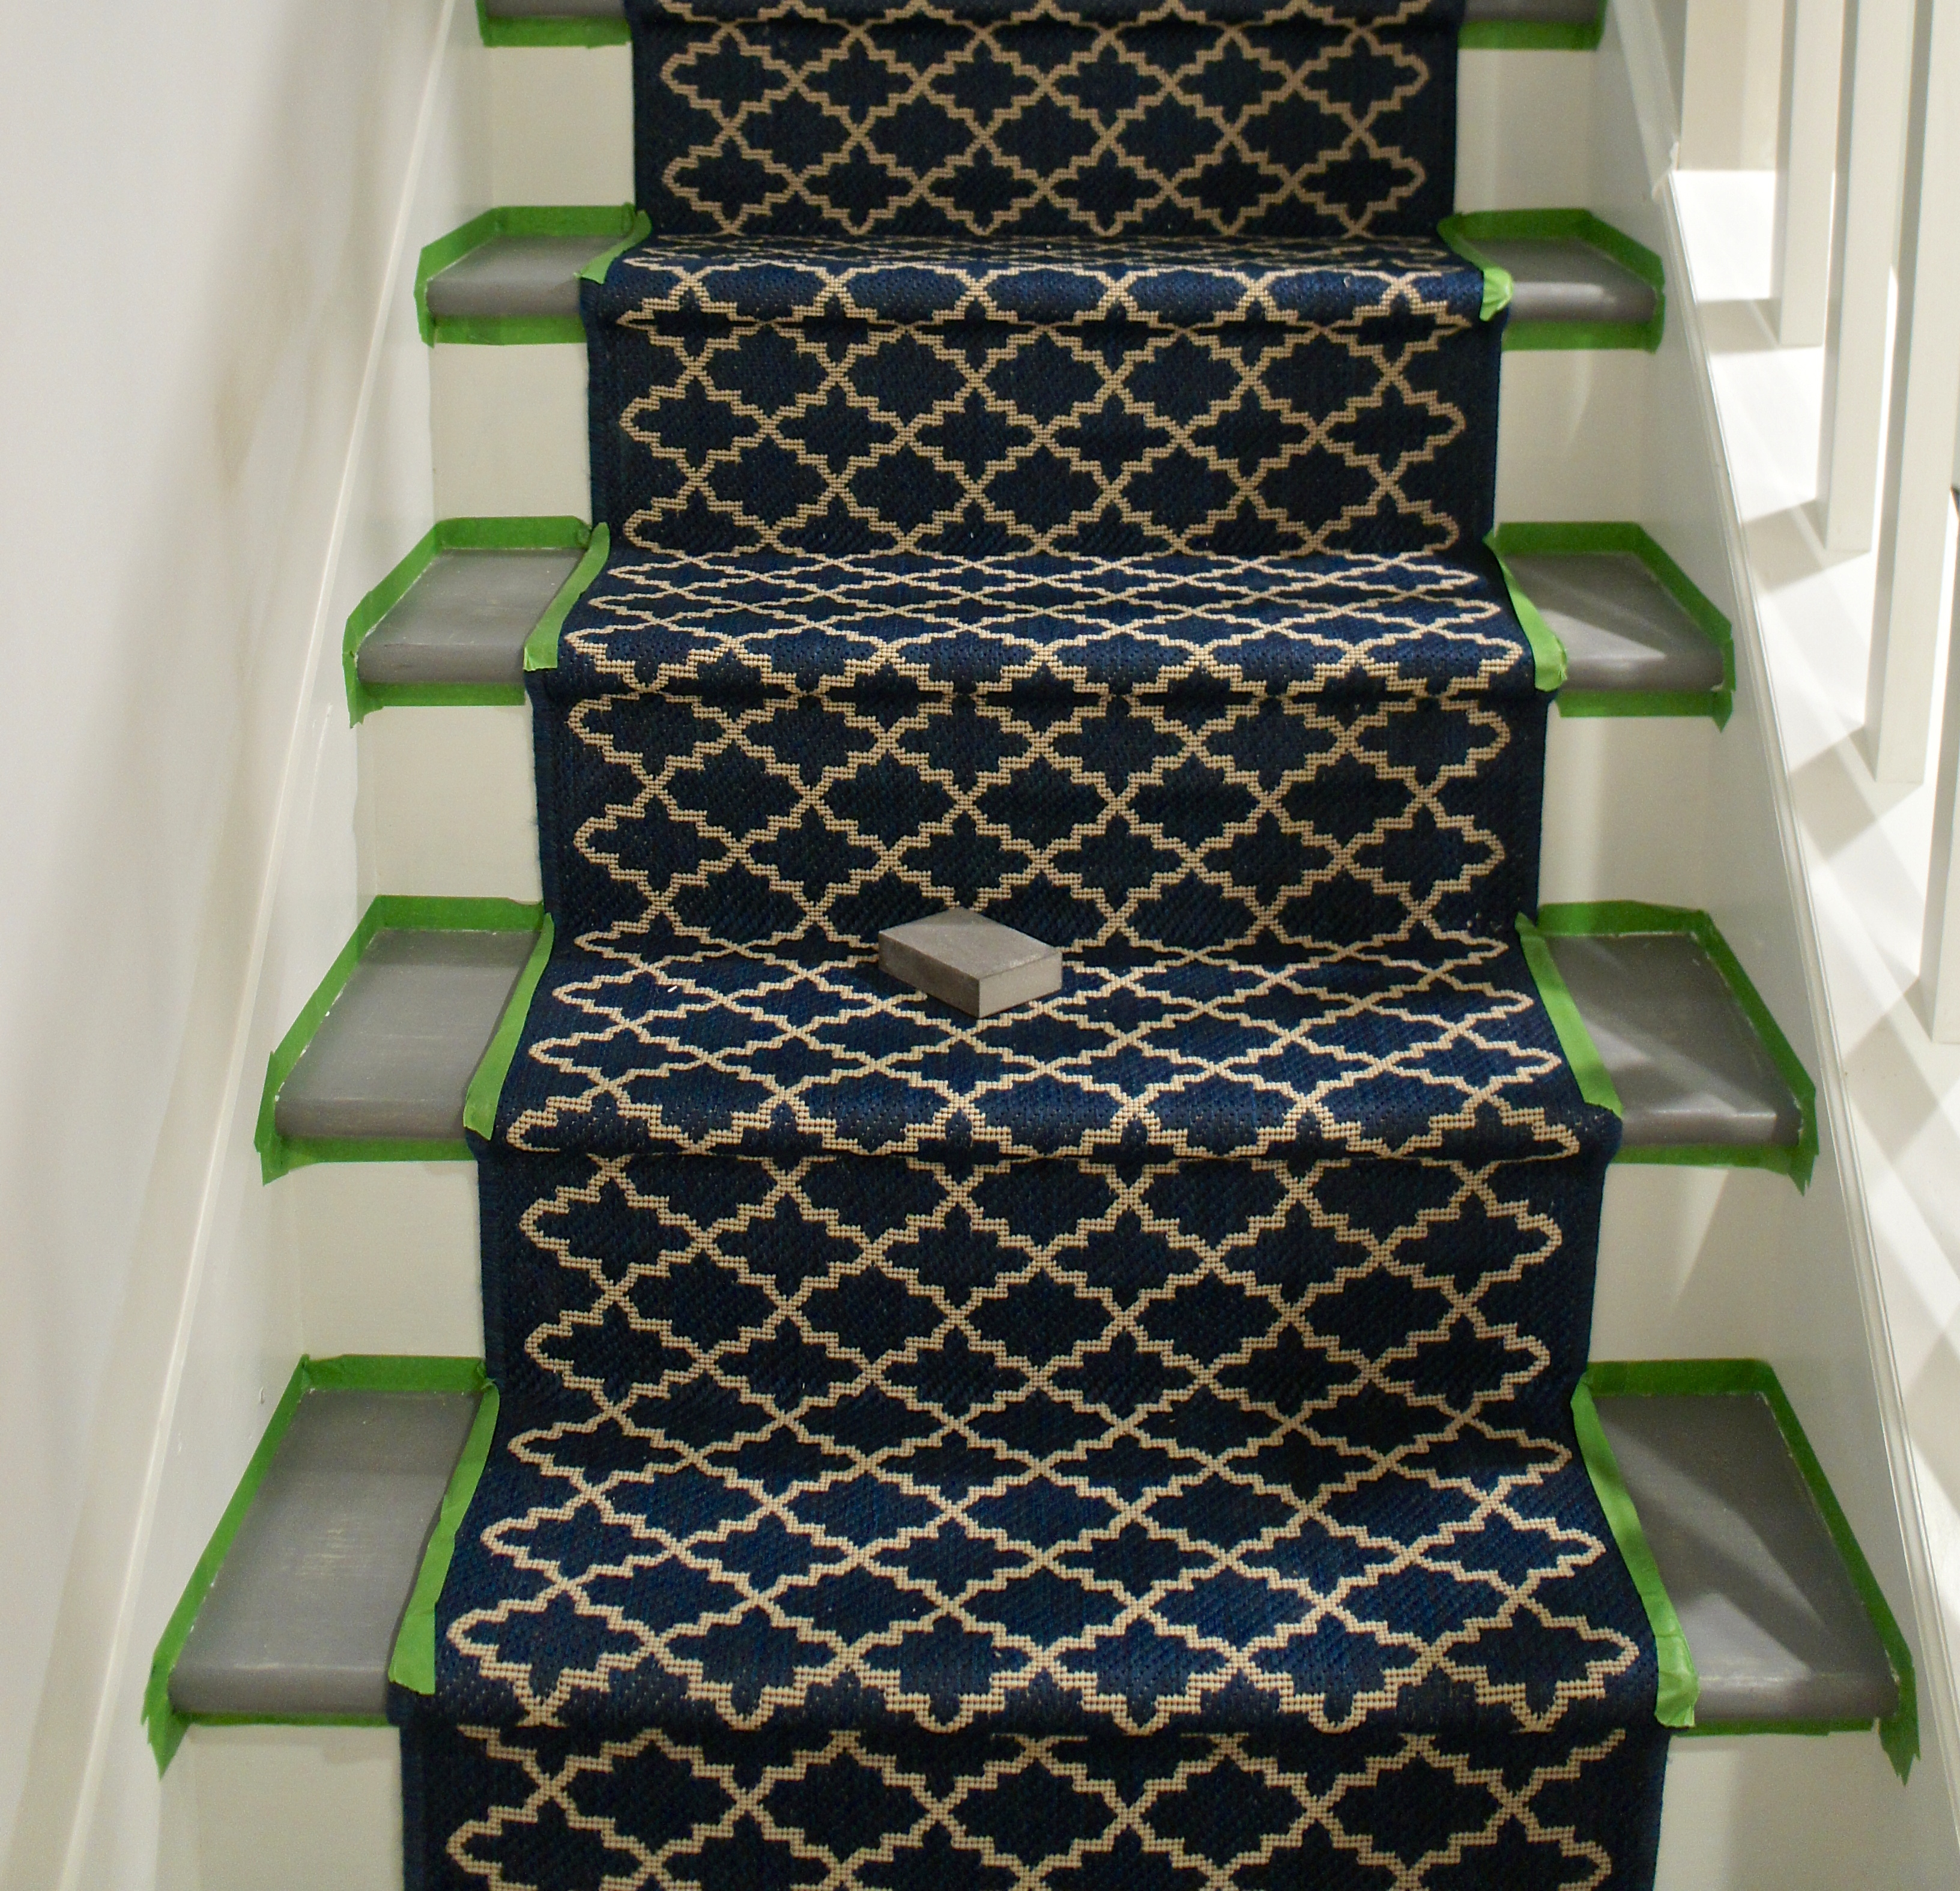 Indoor Outdoor Rug Runners #20: Indoor Outdoor Stair Runner Thistlewood Farm. White Carpet Aisle Runners